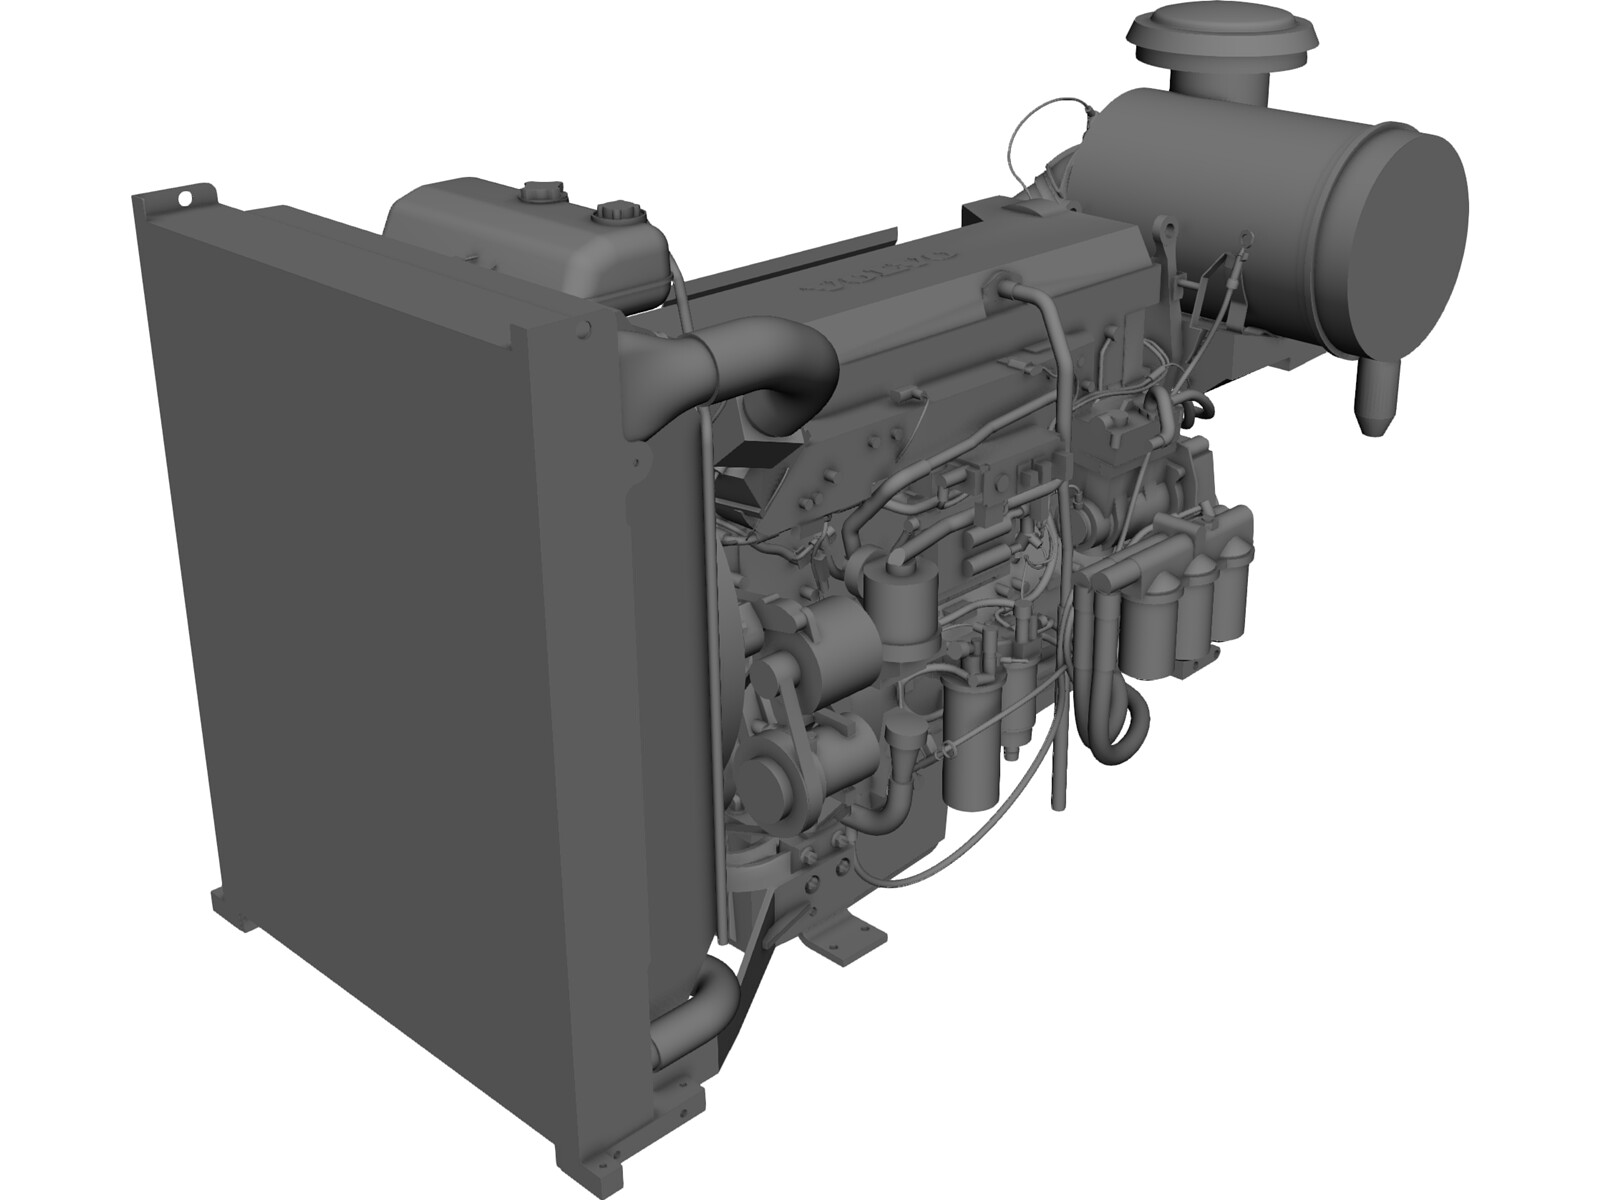 Volvo Penta TAD1362VE Engine 3D CAD Model